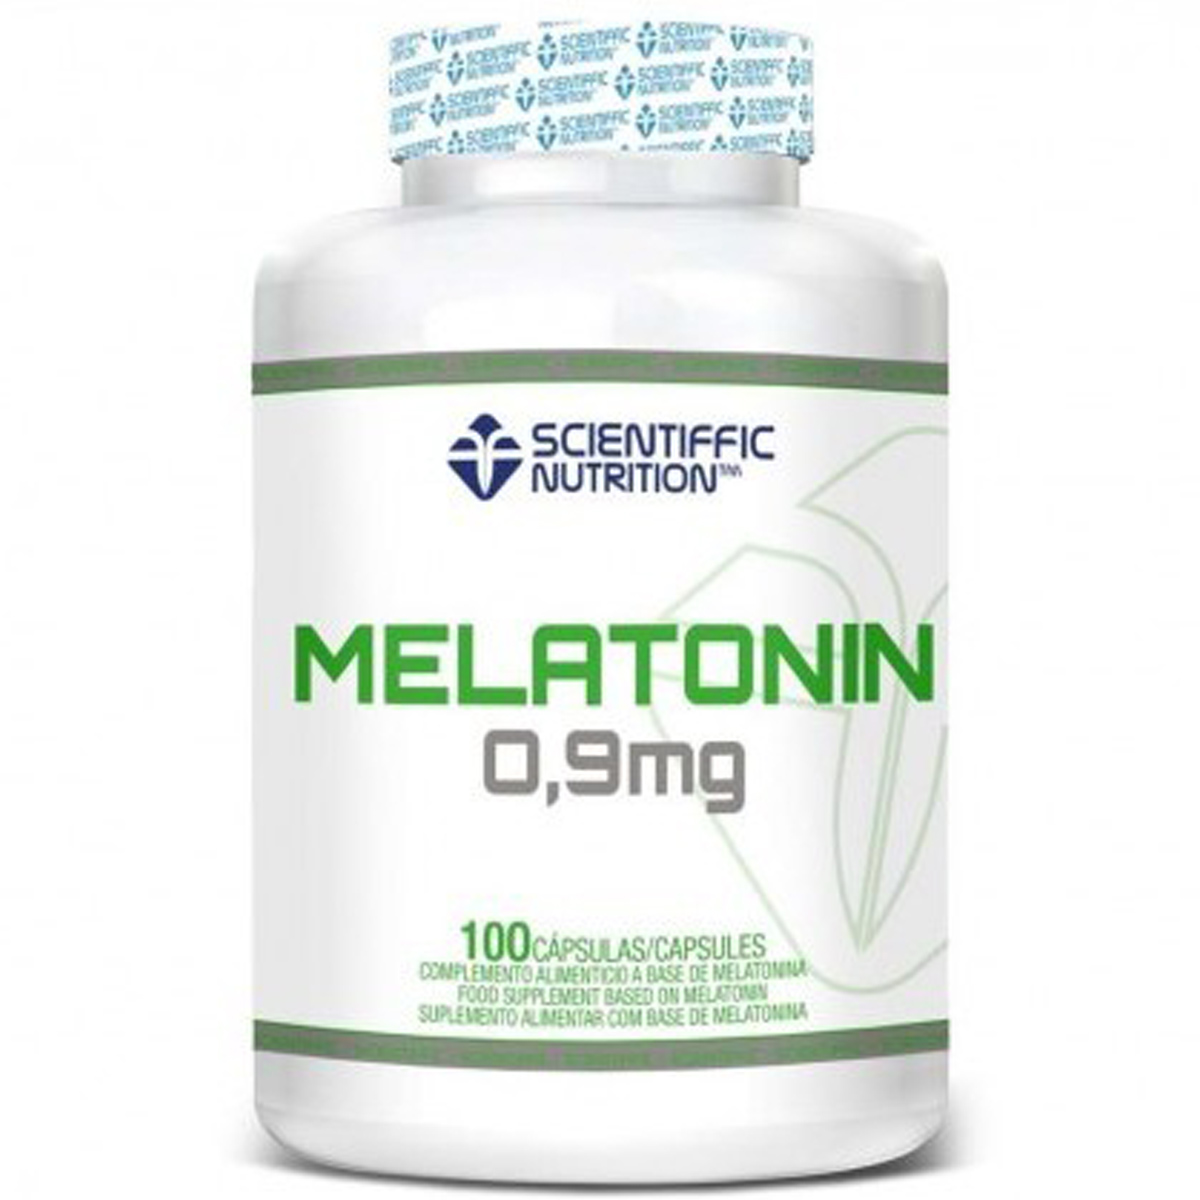 MELATONIN MELATONINA (0,9 Mg) Scientiffic Nutrition 100 Caps